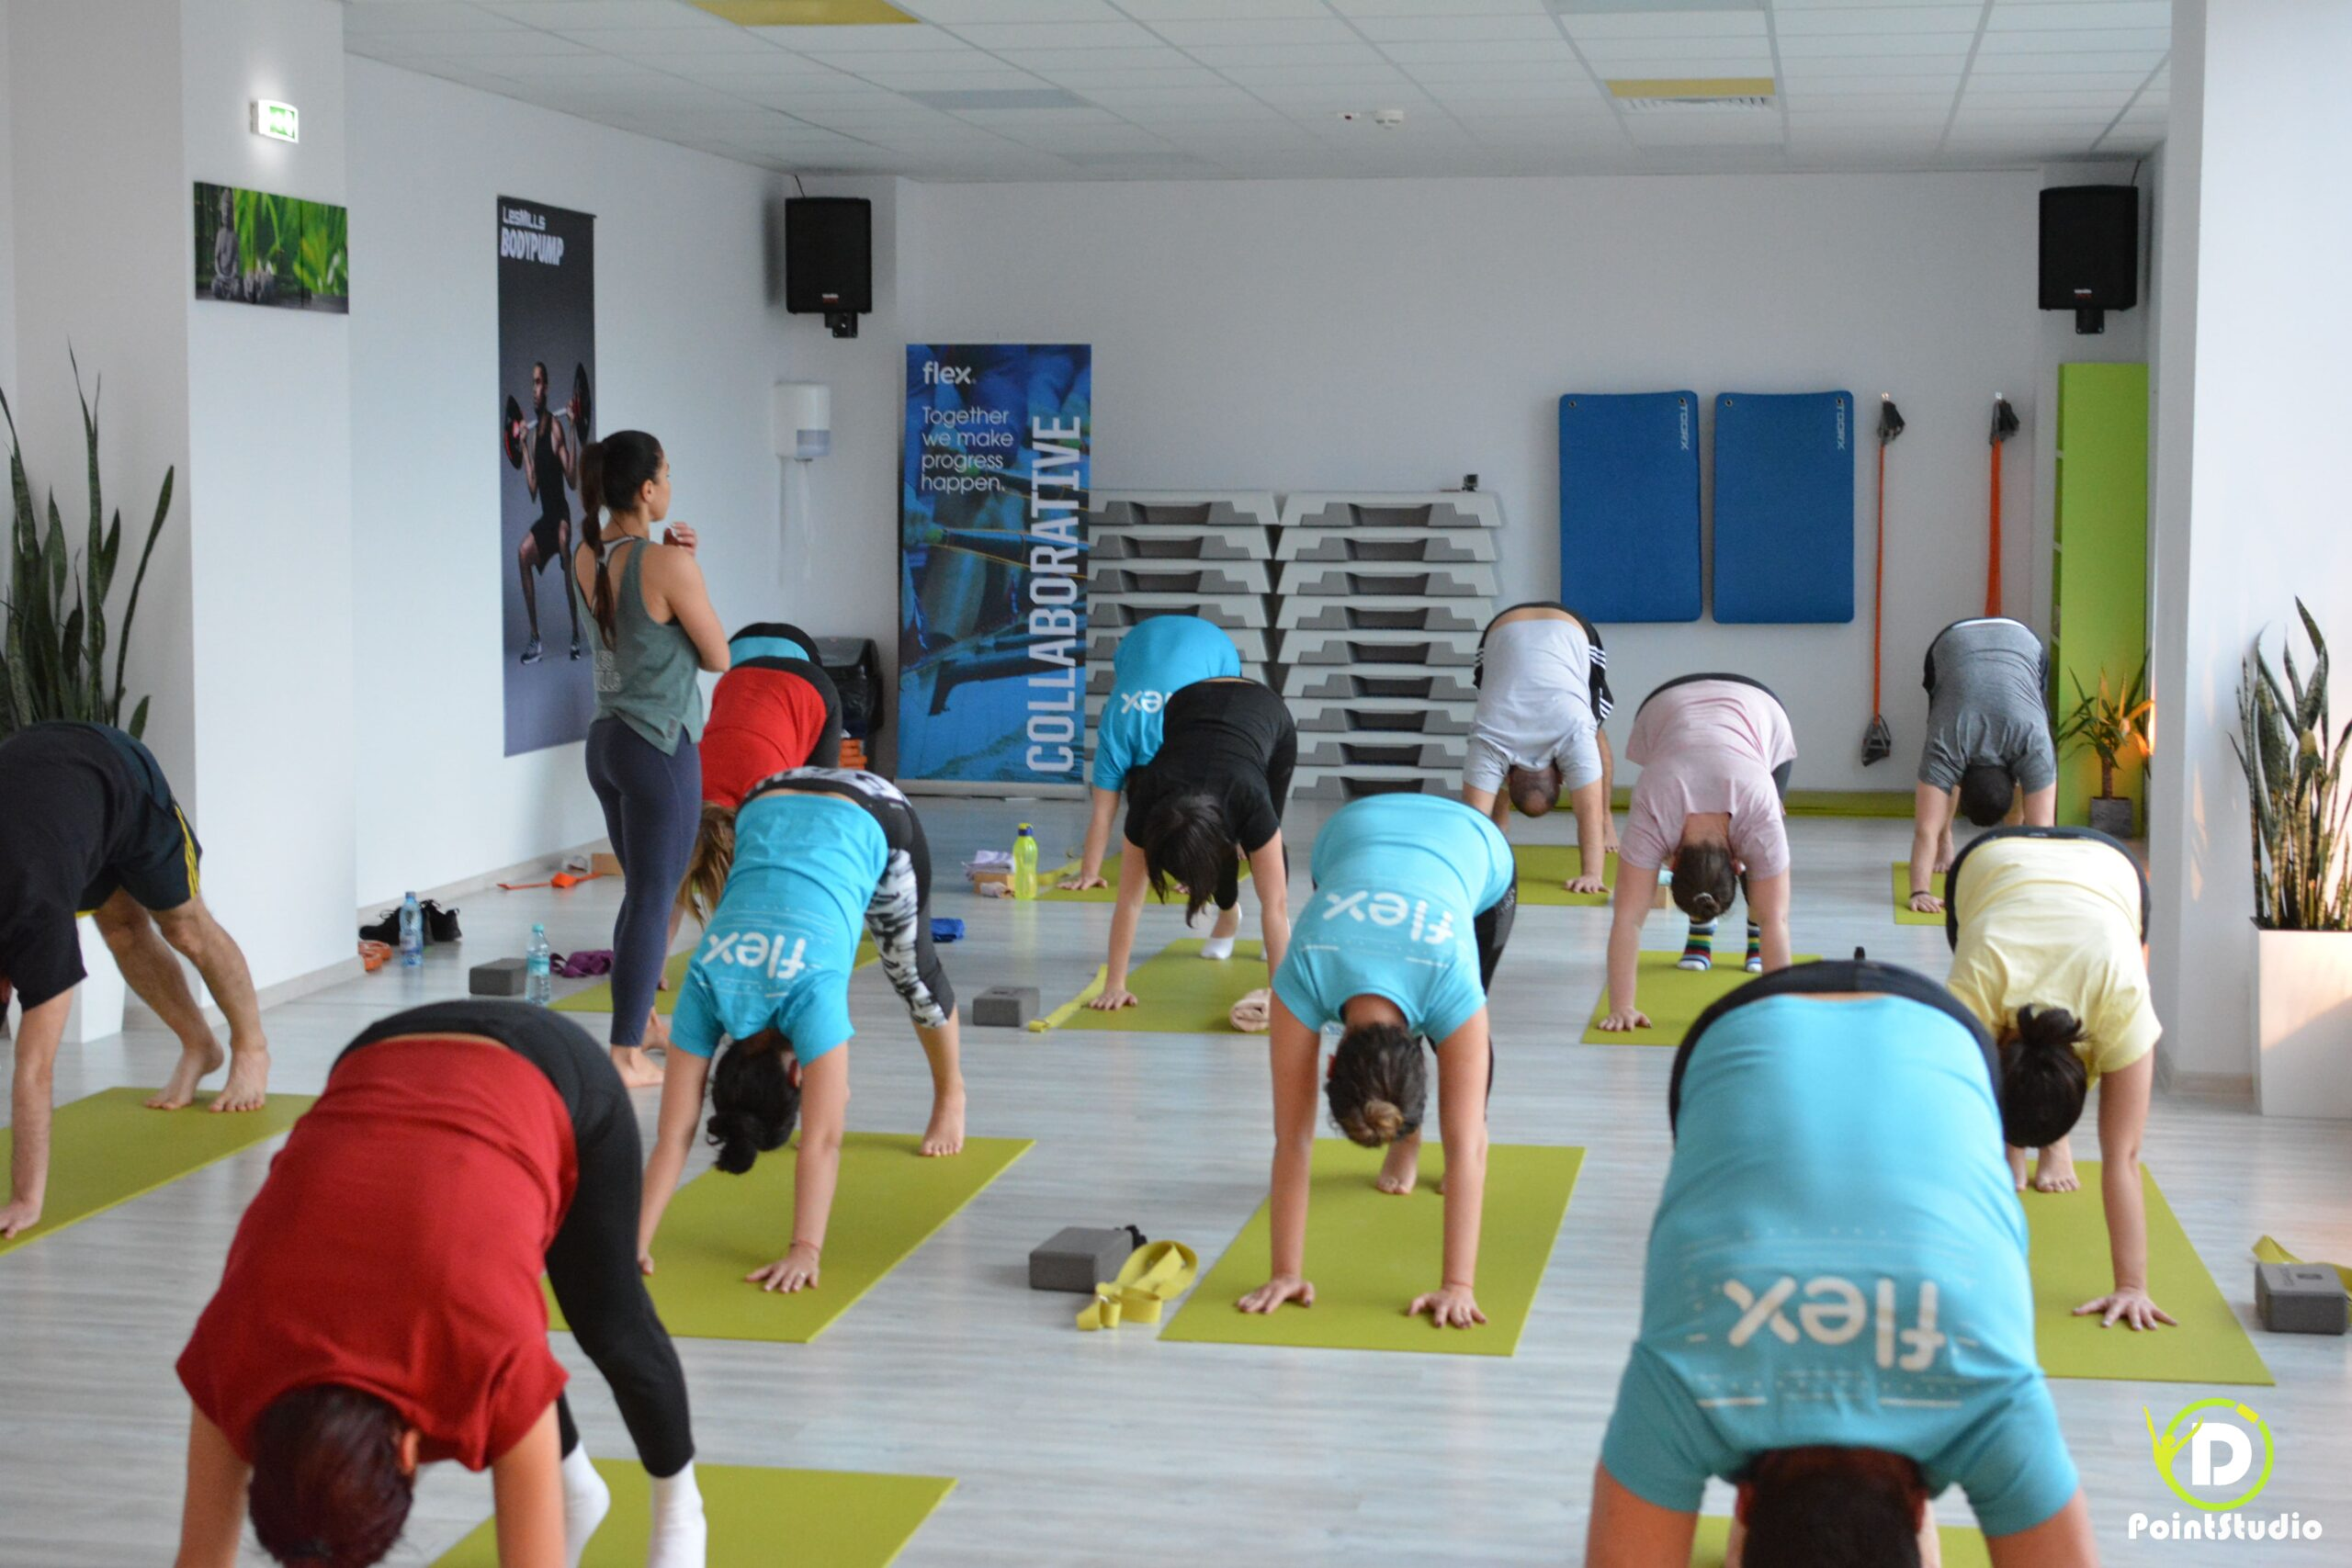 Yoga & Office Works - Flex at D' Point Studio